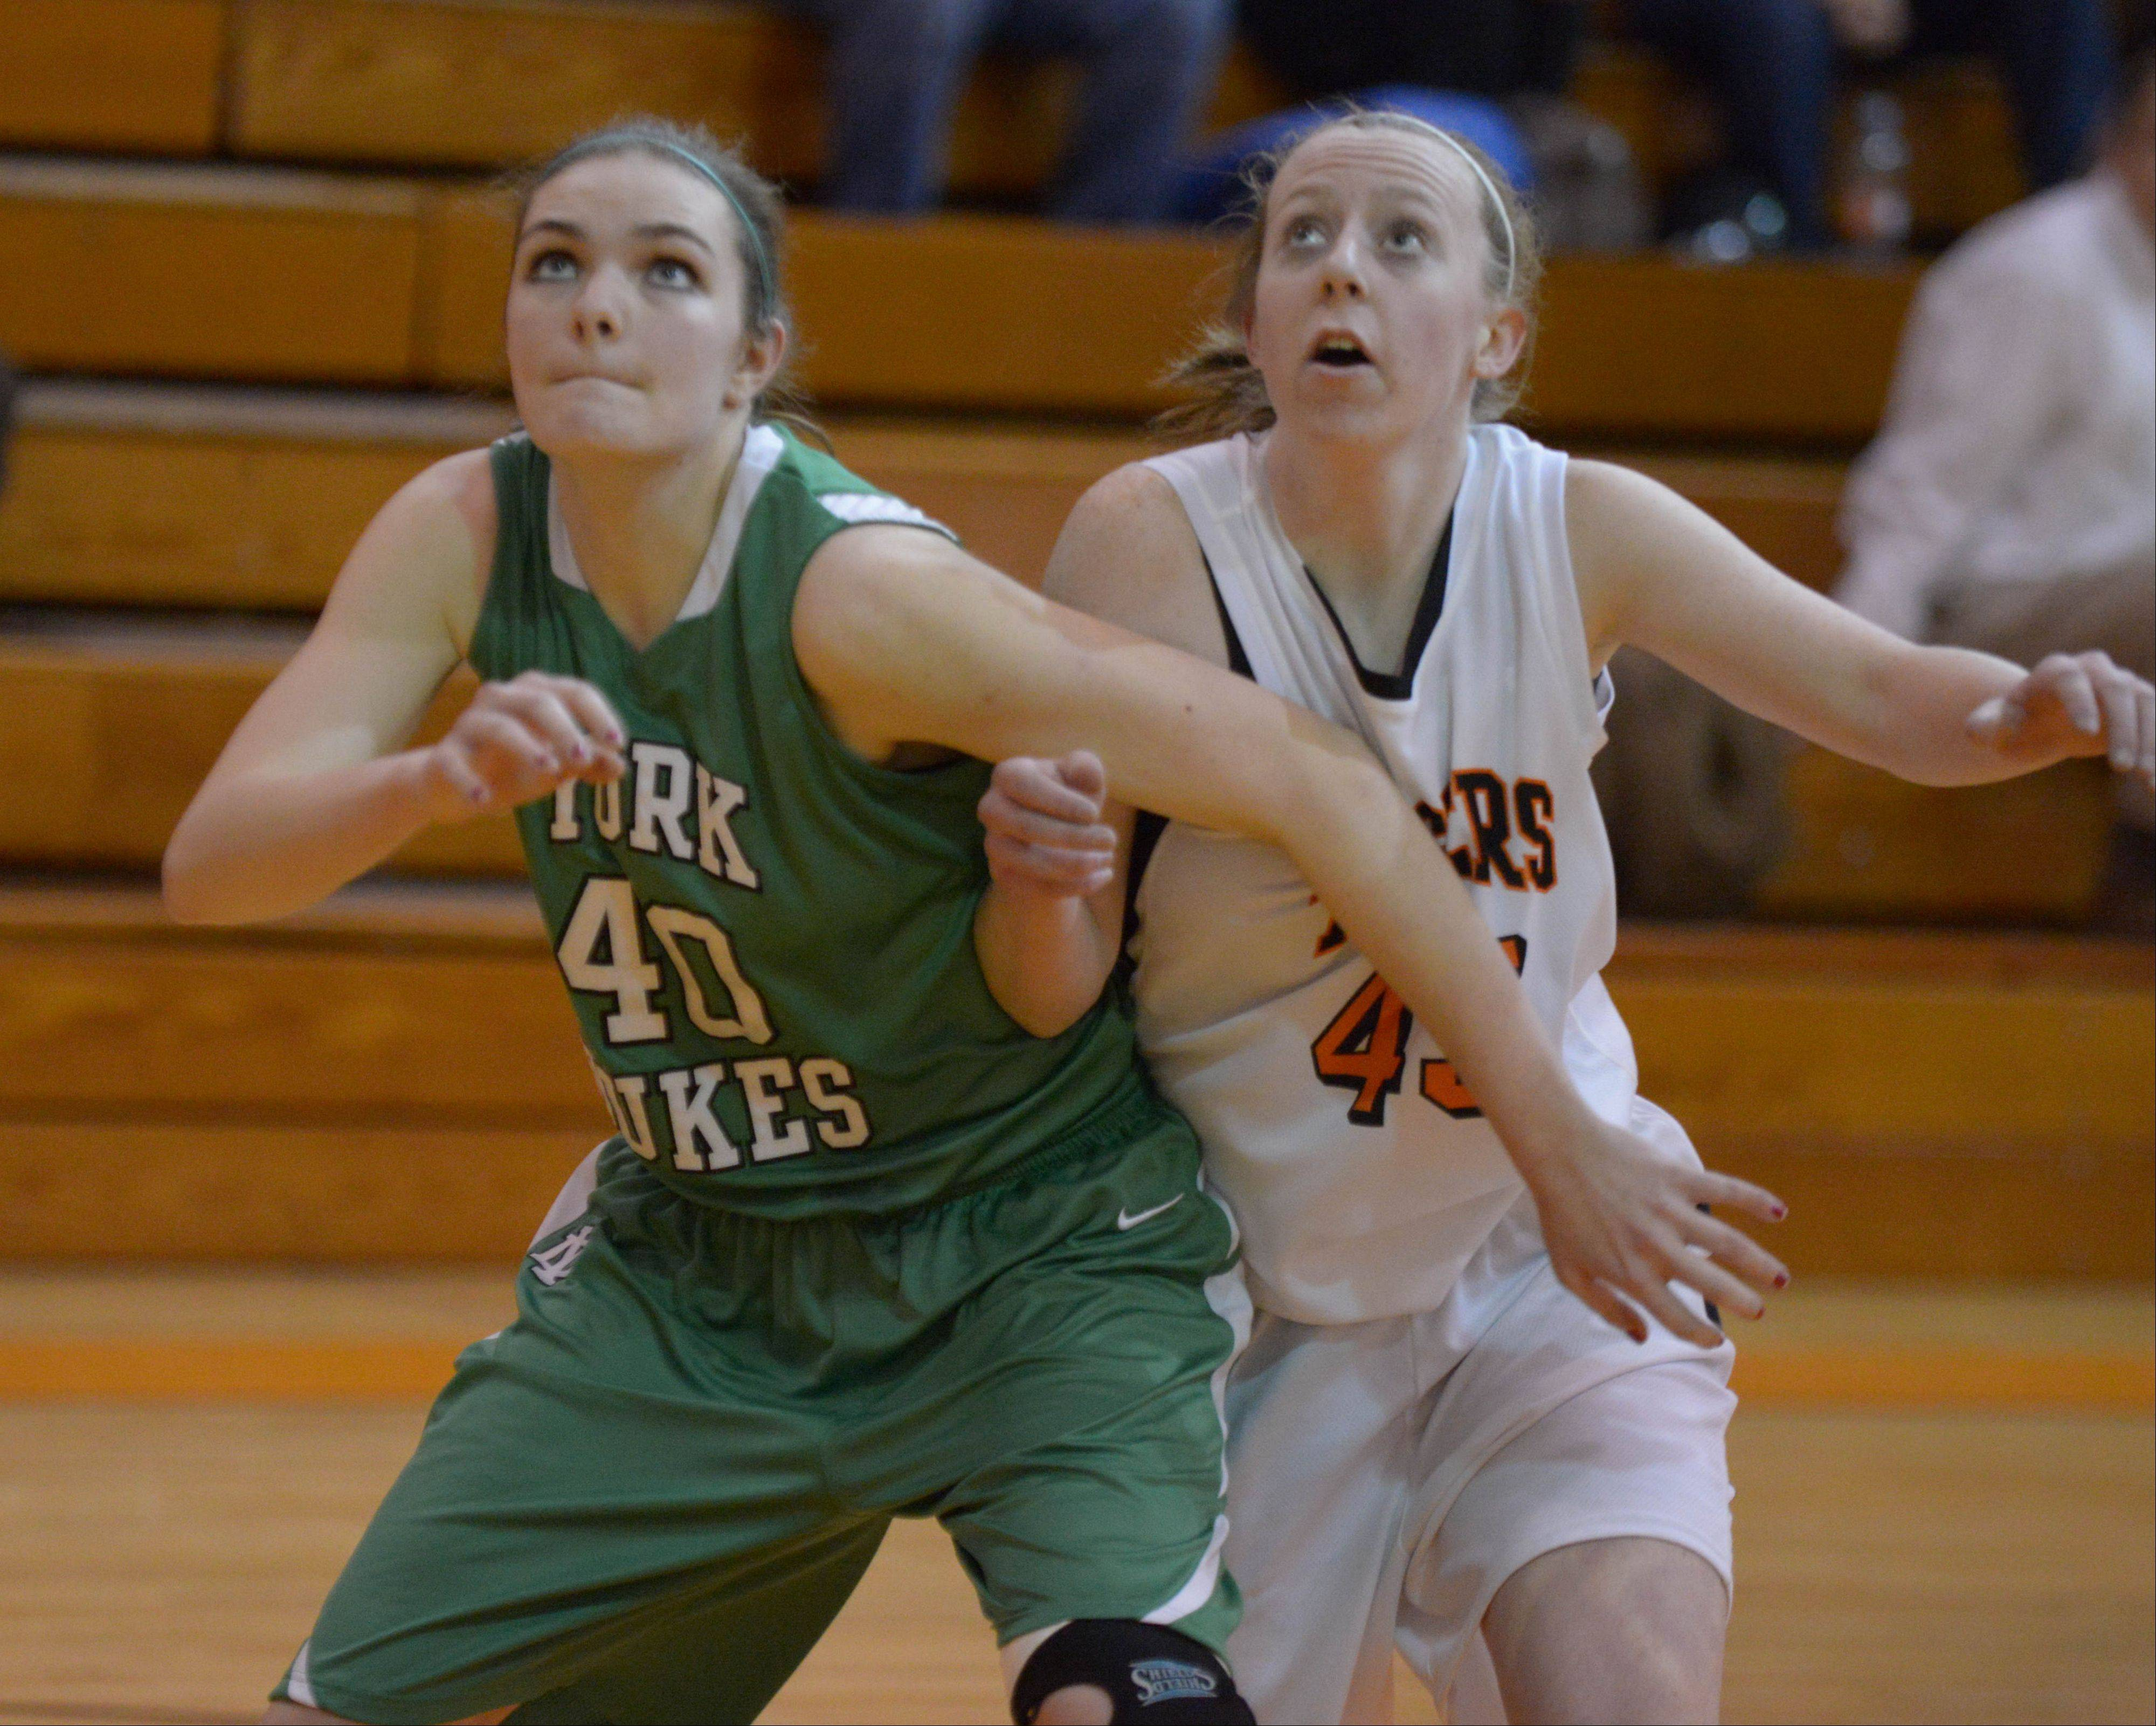 Images: York vs. Wheaton Warrenville South, girls basketball